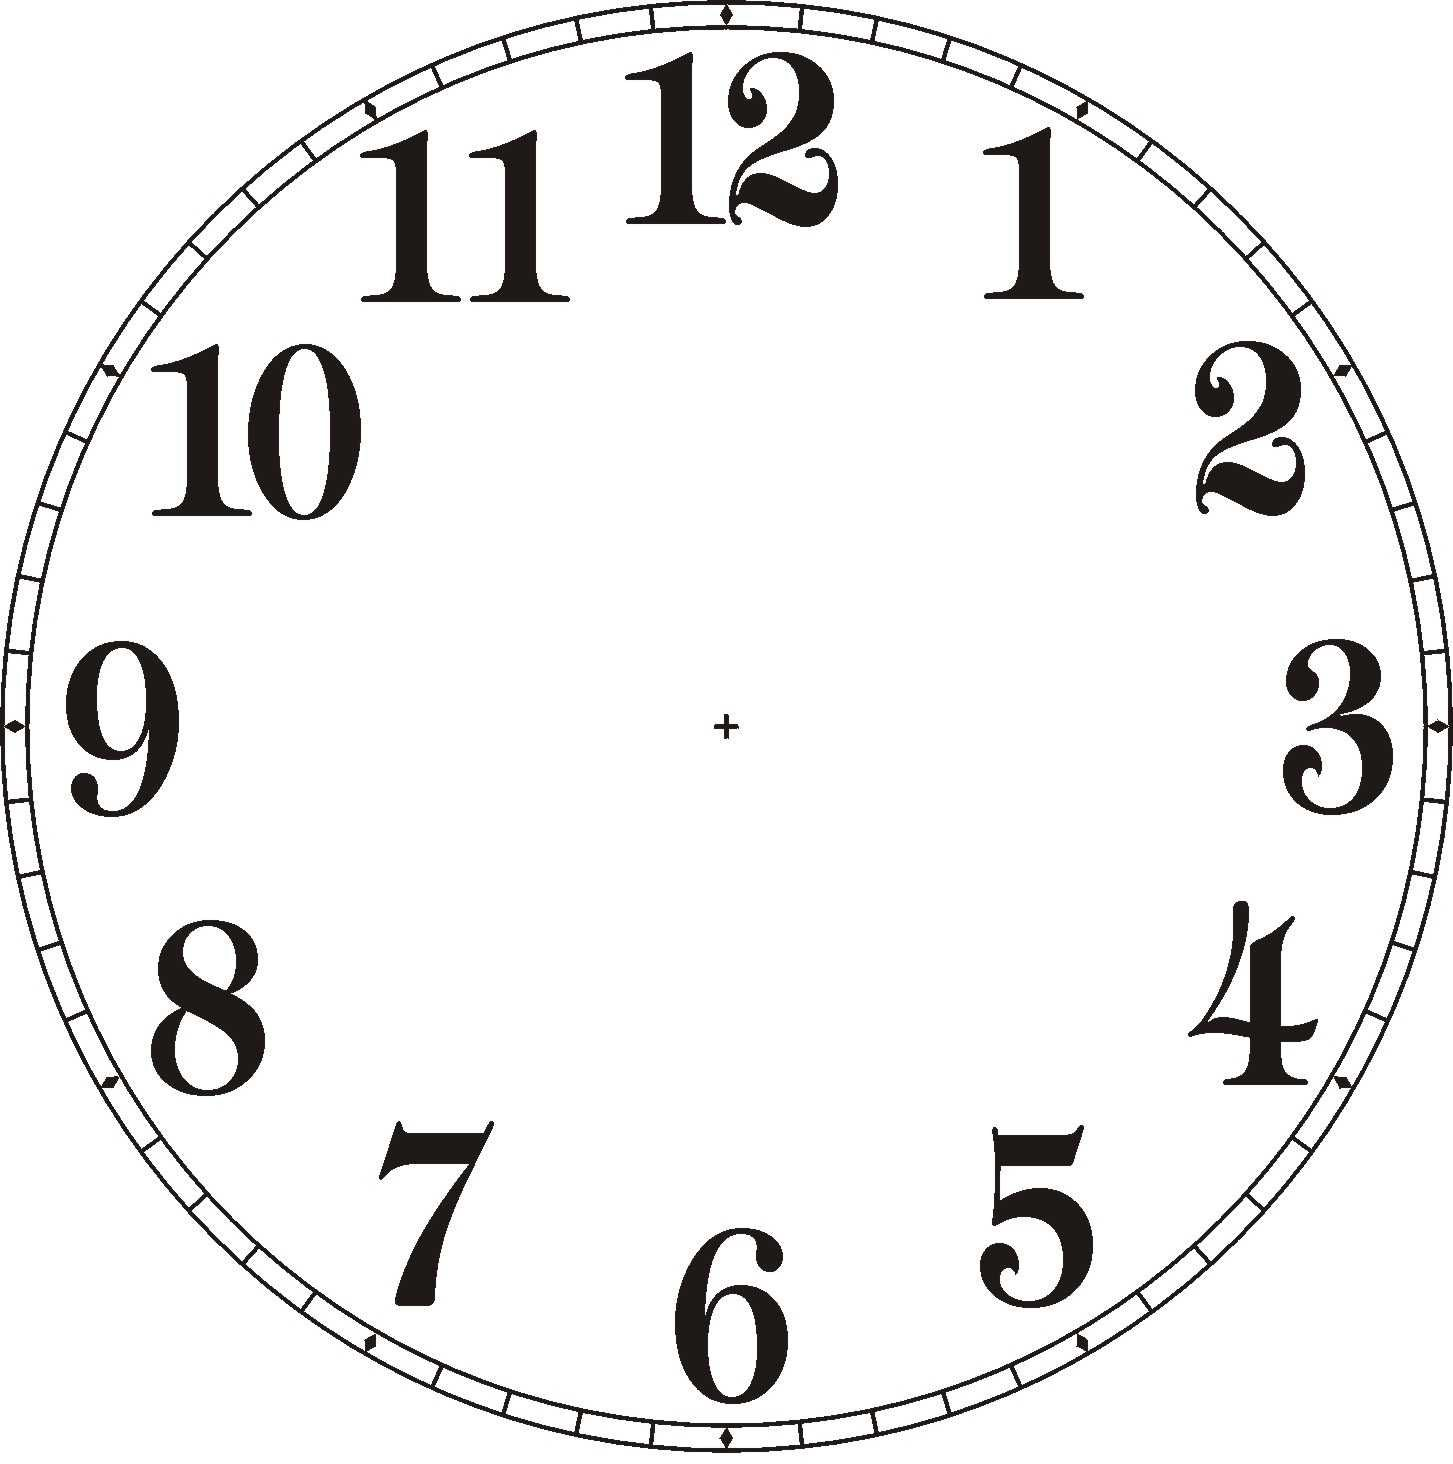 18 clip art clock face free cliparts that you can download to you rh pinterest com analog clock clipart clipart of a clock